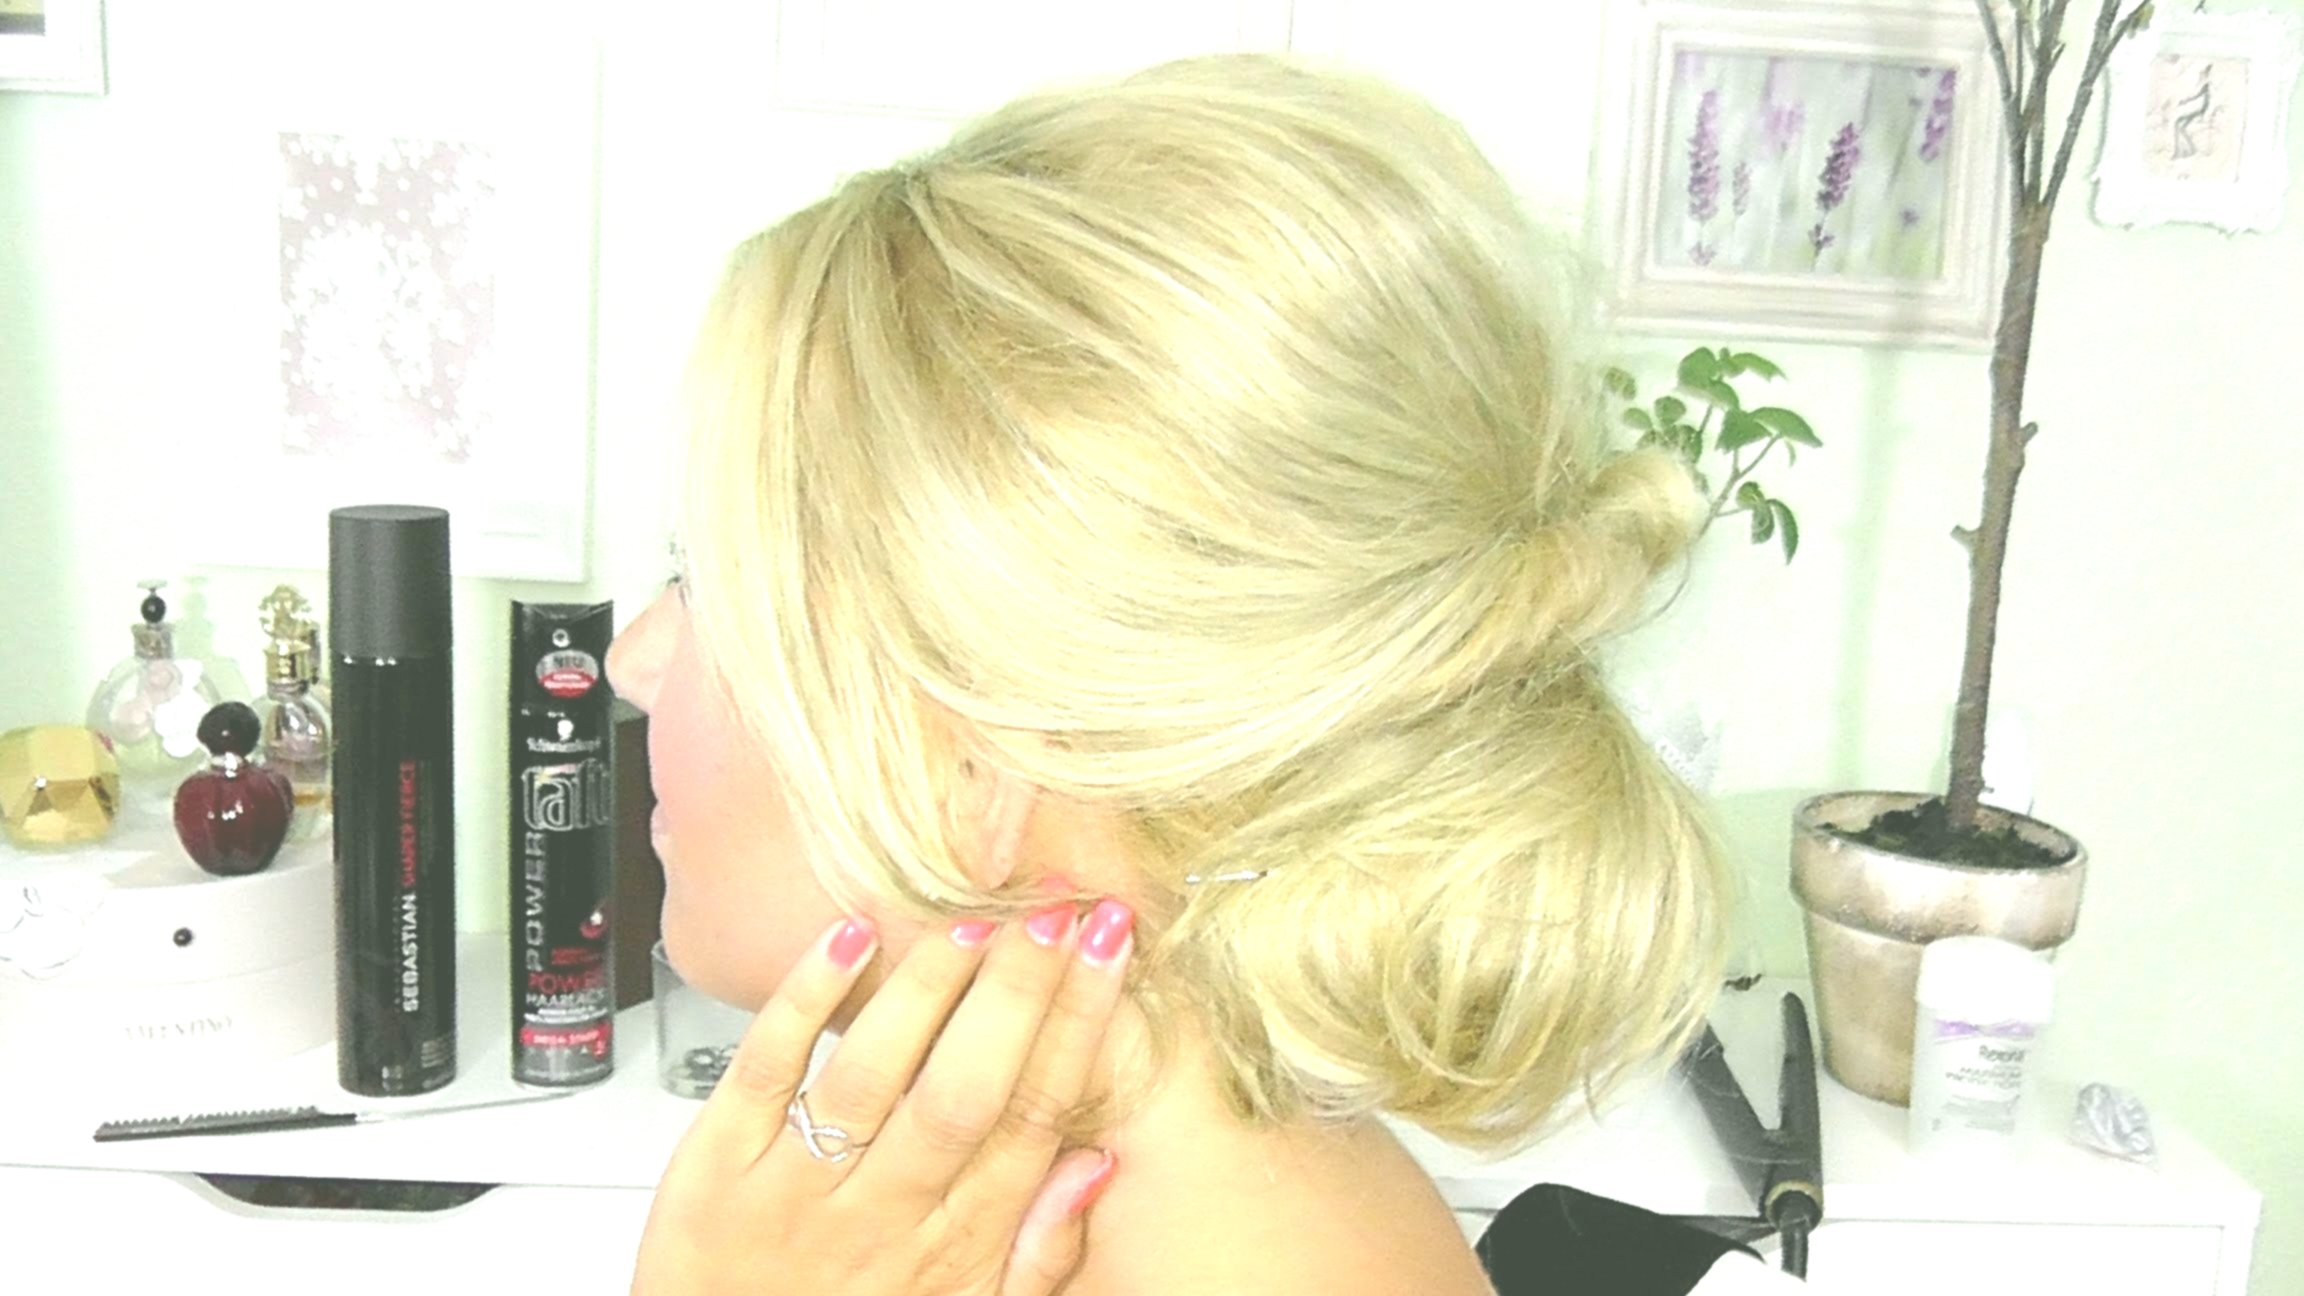 terribly cool updo on the side photo-modern updos Side portrait